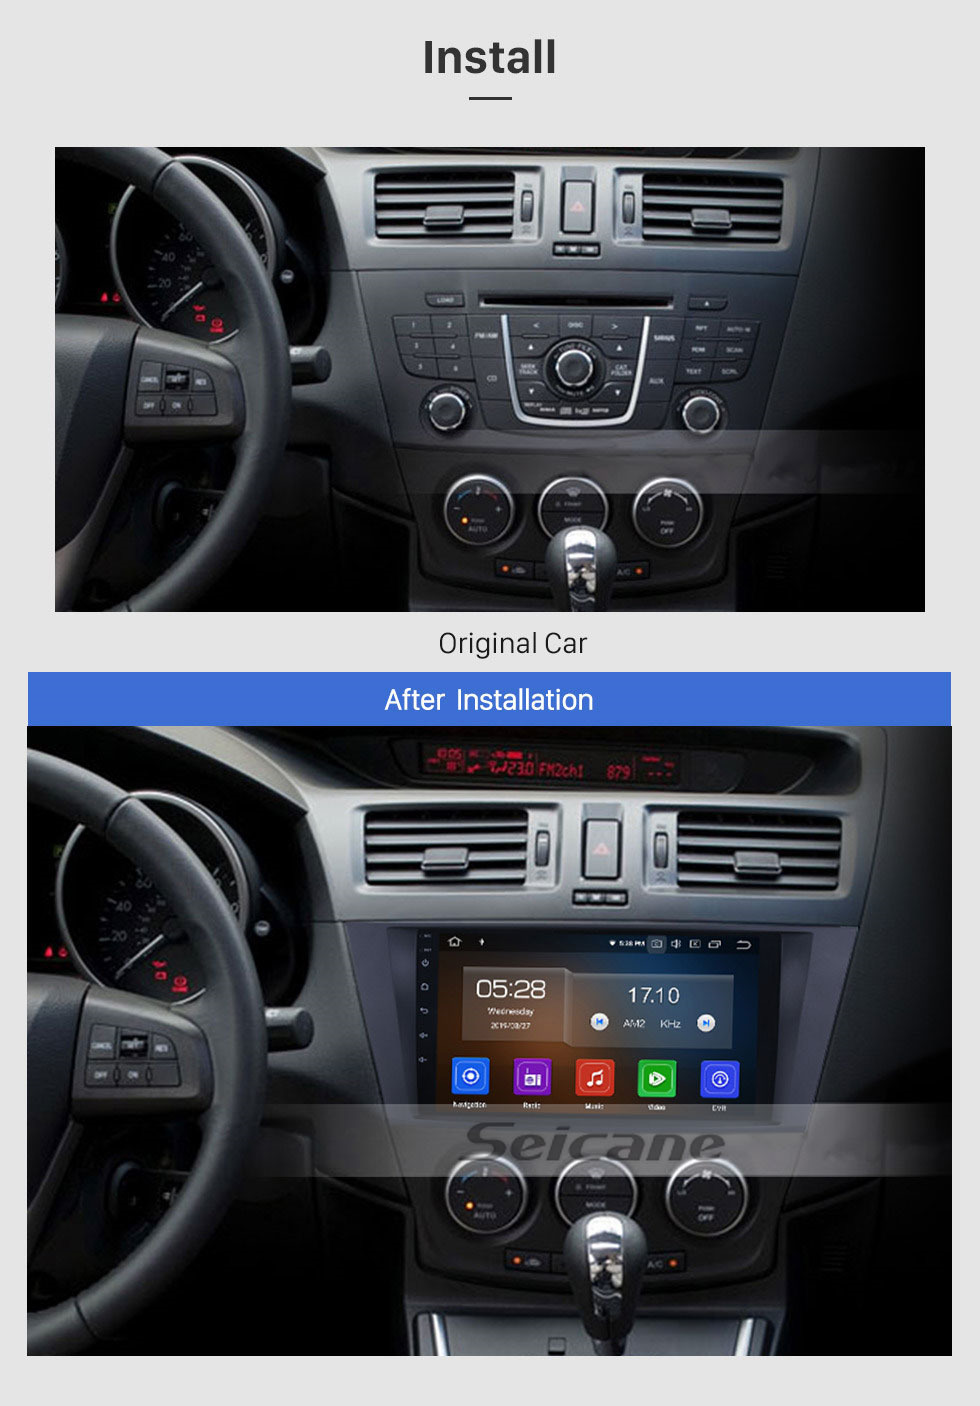 Seicane 9 inch 2009-2012 MAZDA 5  Android 9.0  GPS navigation system with Radio Mirror link multi-touch screen OBD DVR Rear view camera TV 3G WIFI USB Bluetooth